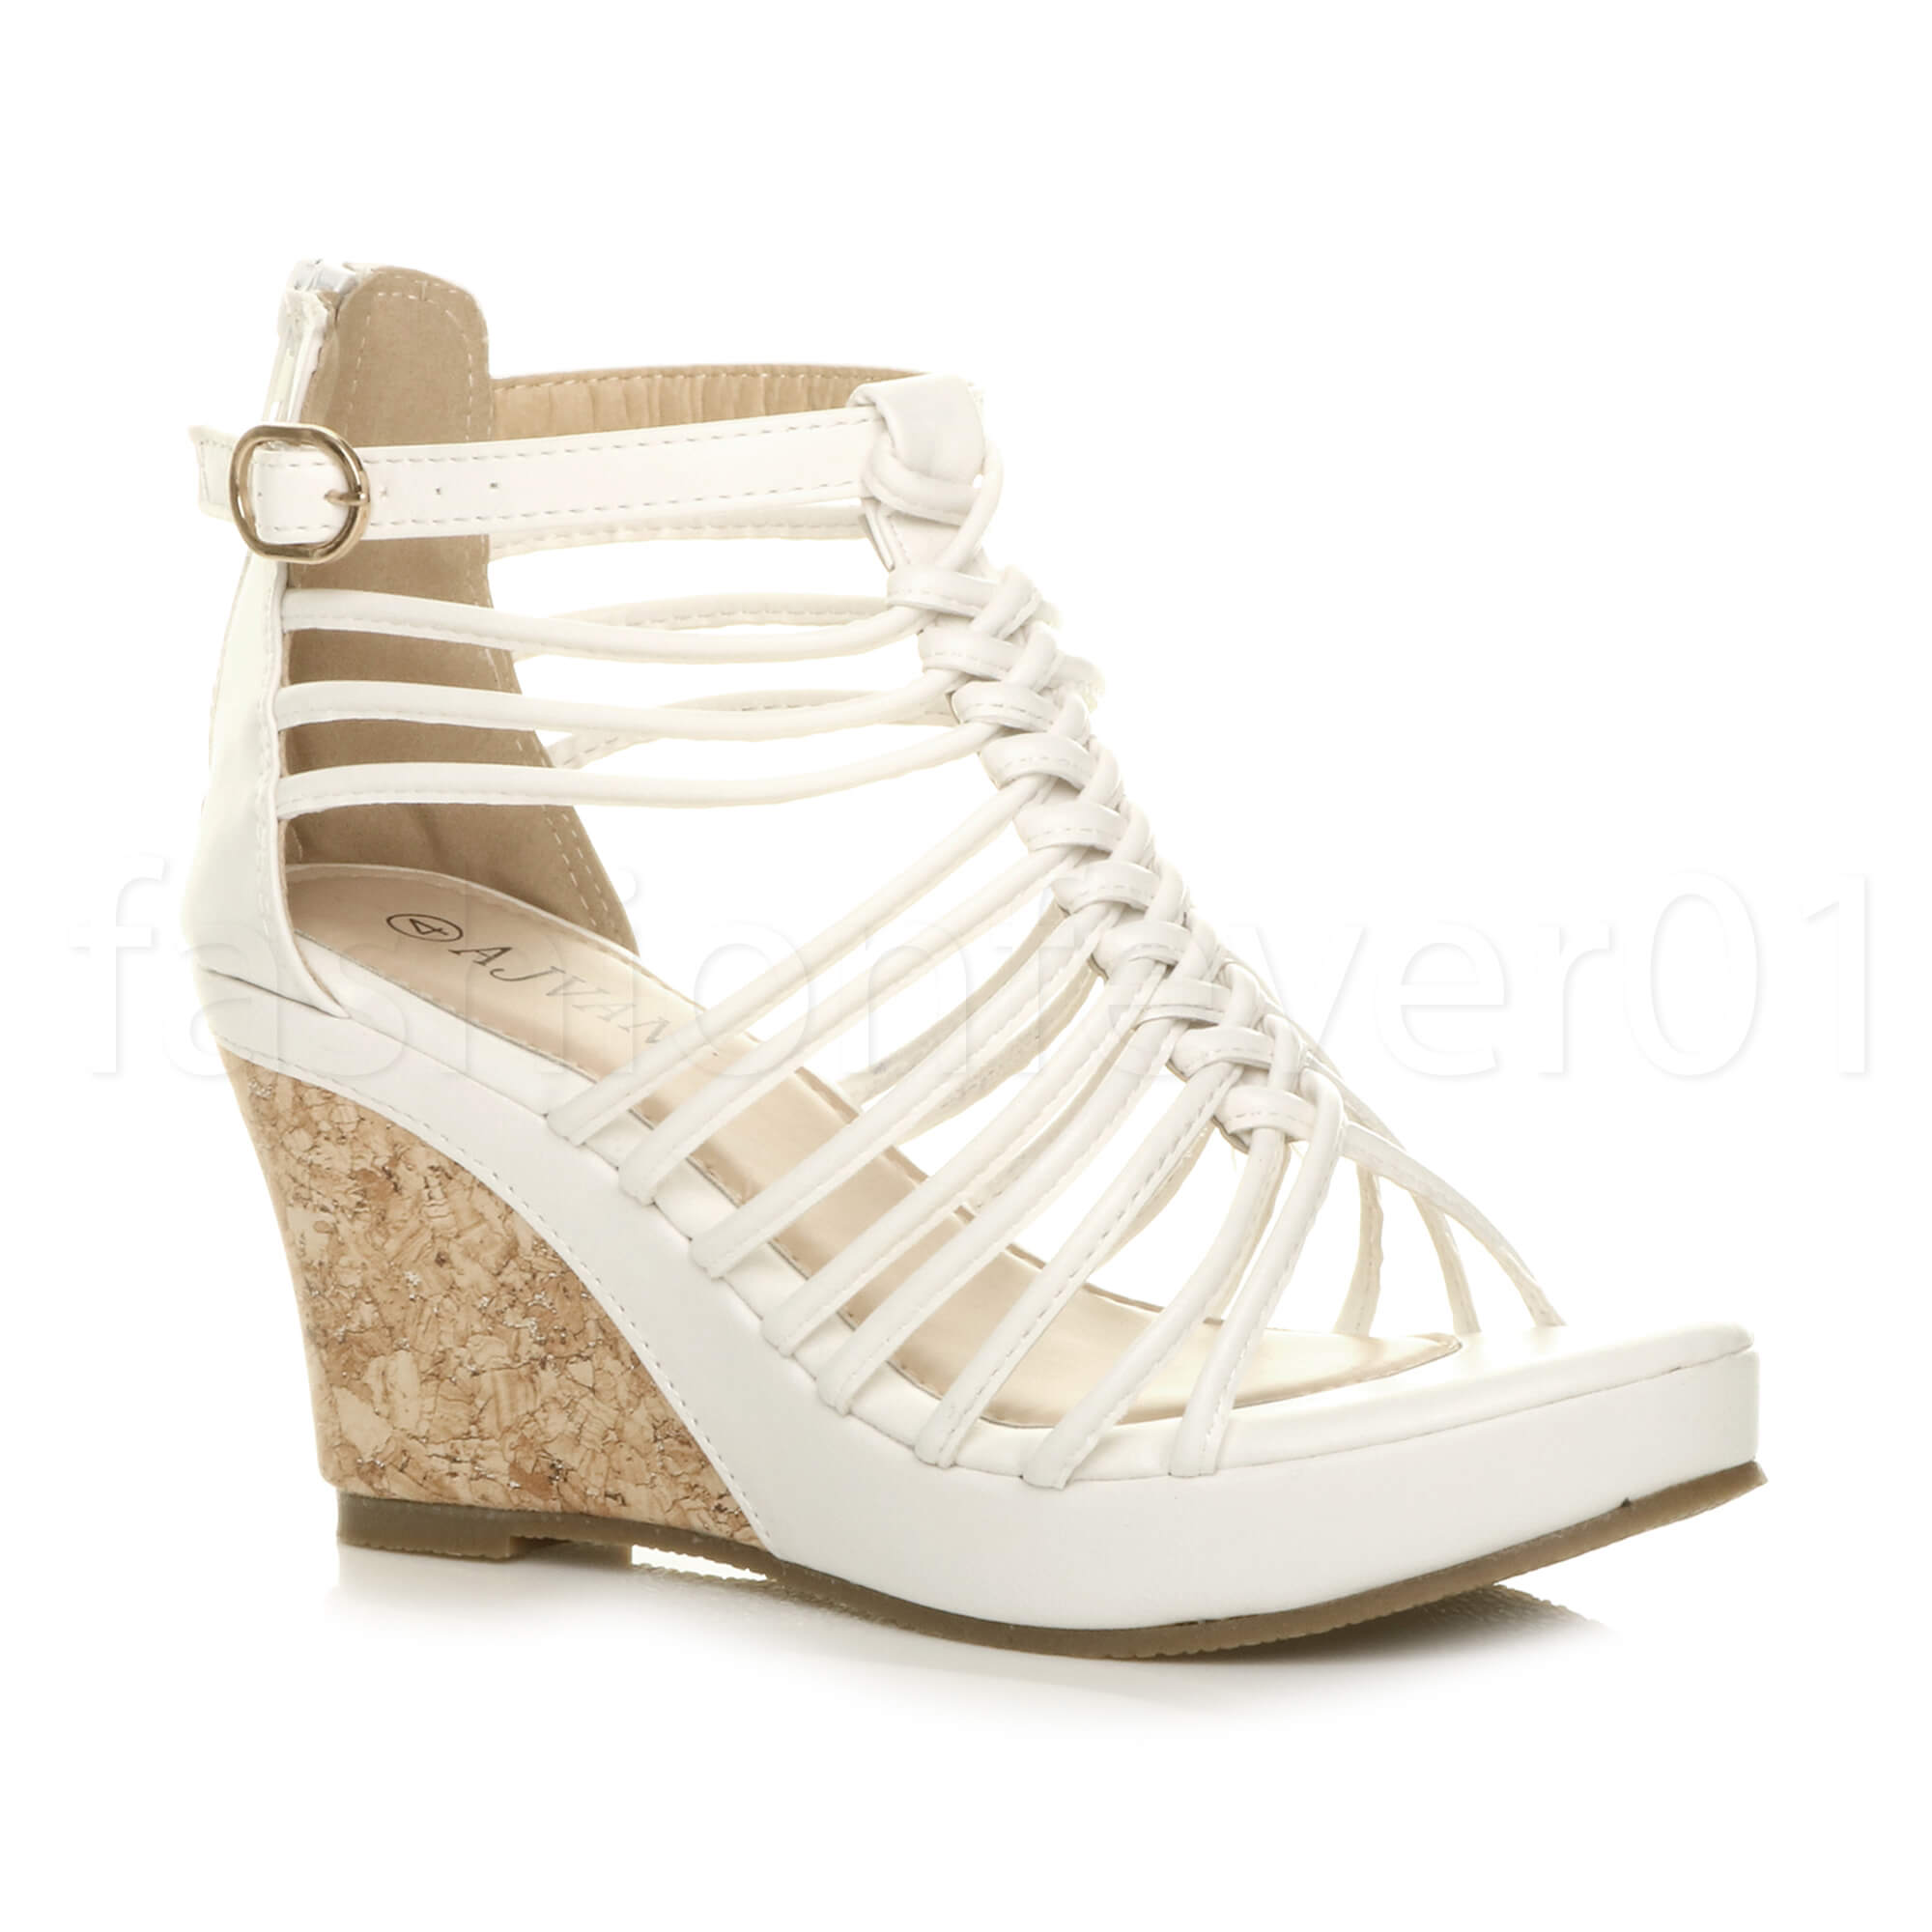 Meanwhile shoespie sells different height heel of women fashion dress shoes, flat-heeled dress shoes, kitten heel dress shoes, or high heel dress shoes, or what have you. Shoespie bring convenient and quick, save the time to shop discount womens dress sandals.